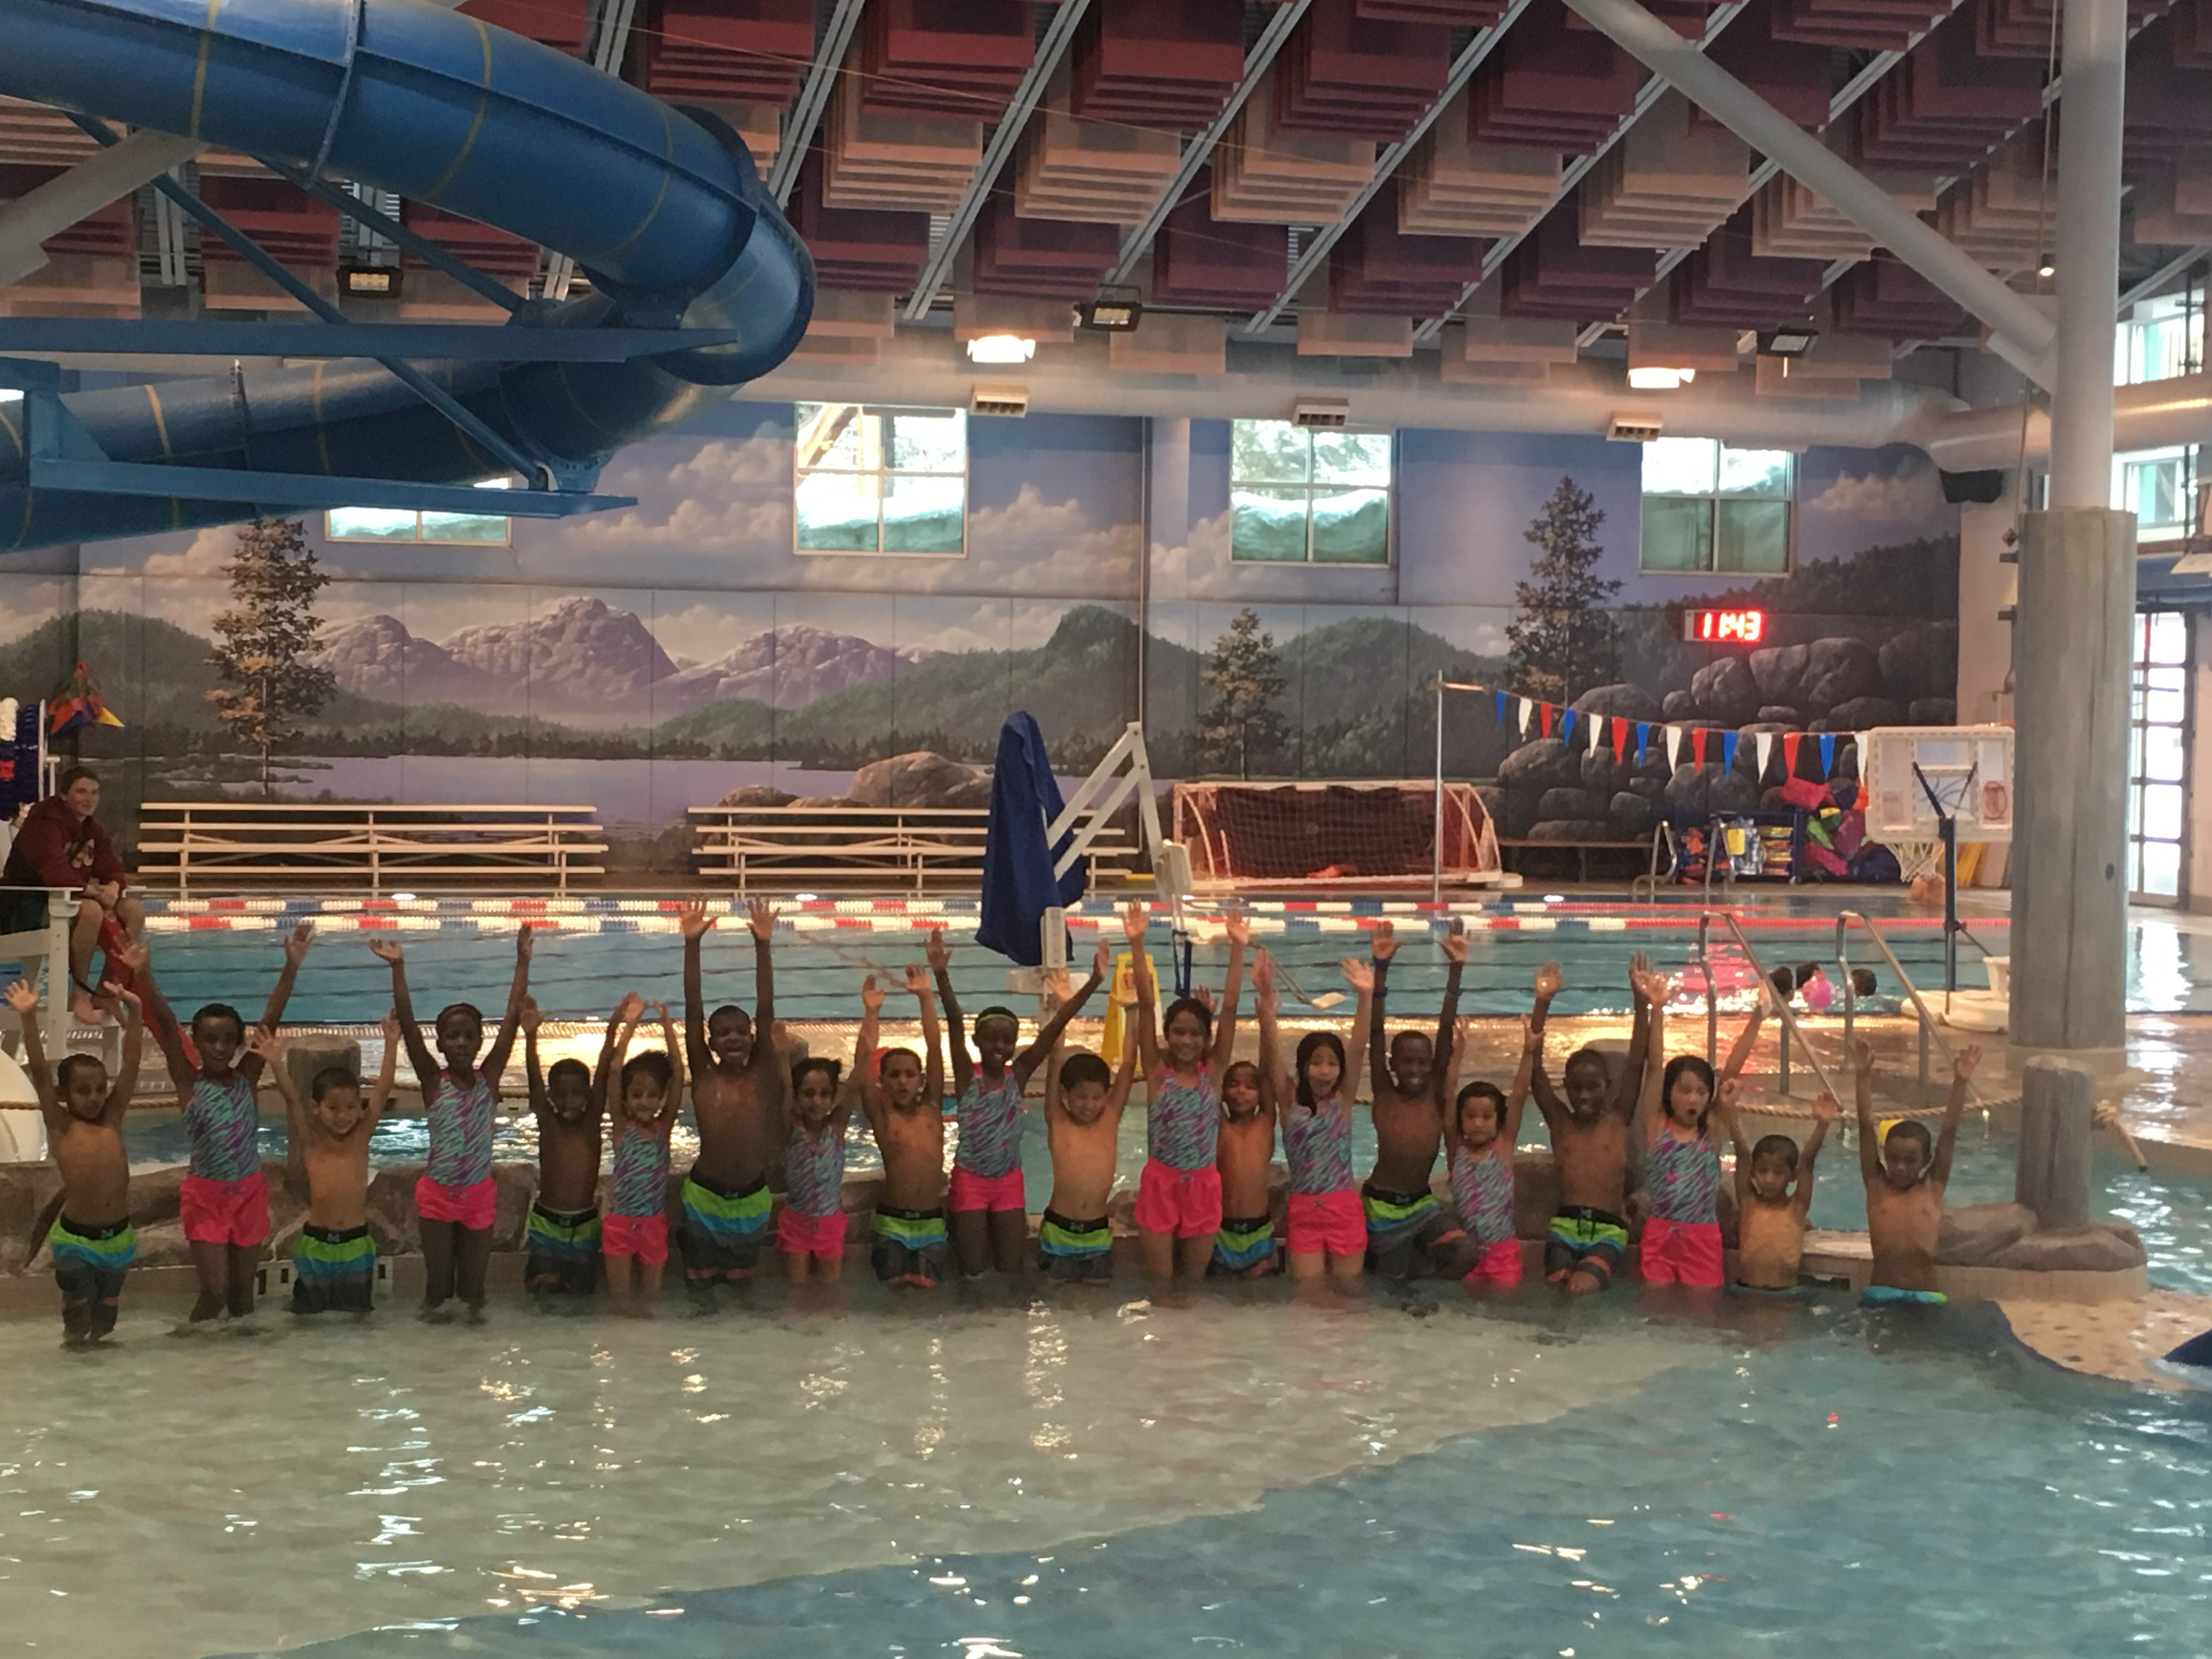 swimming-time-at-aspen-rec-center_31827000790_o